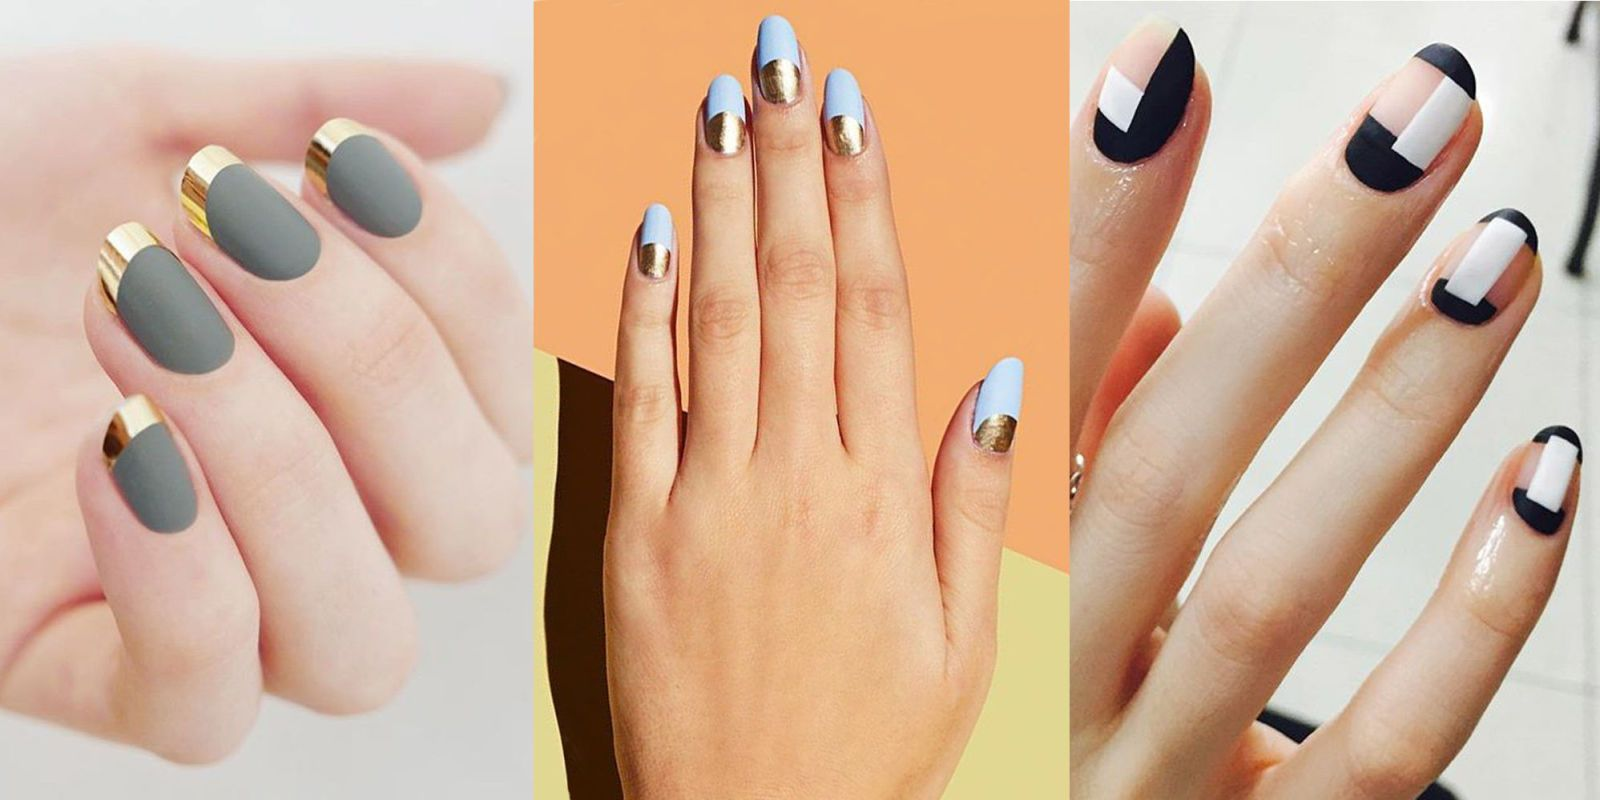 Tips to prevent your nails from breaking